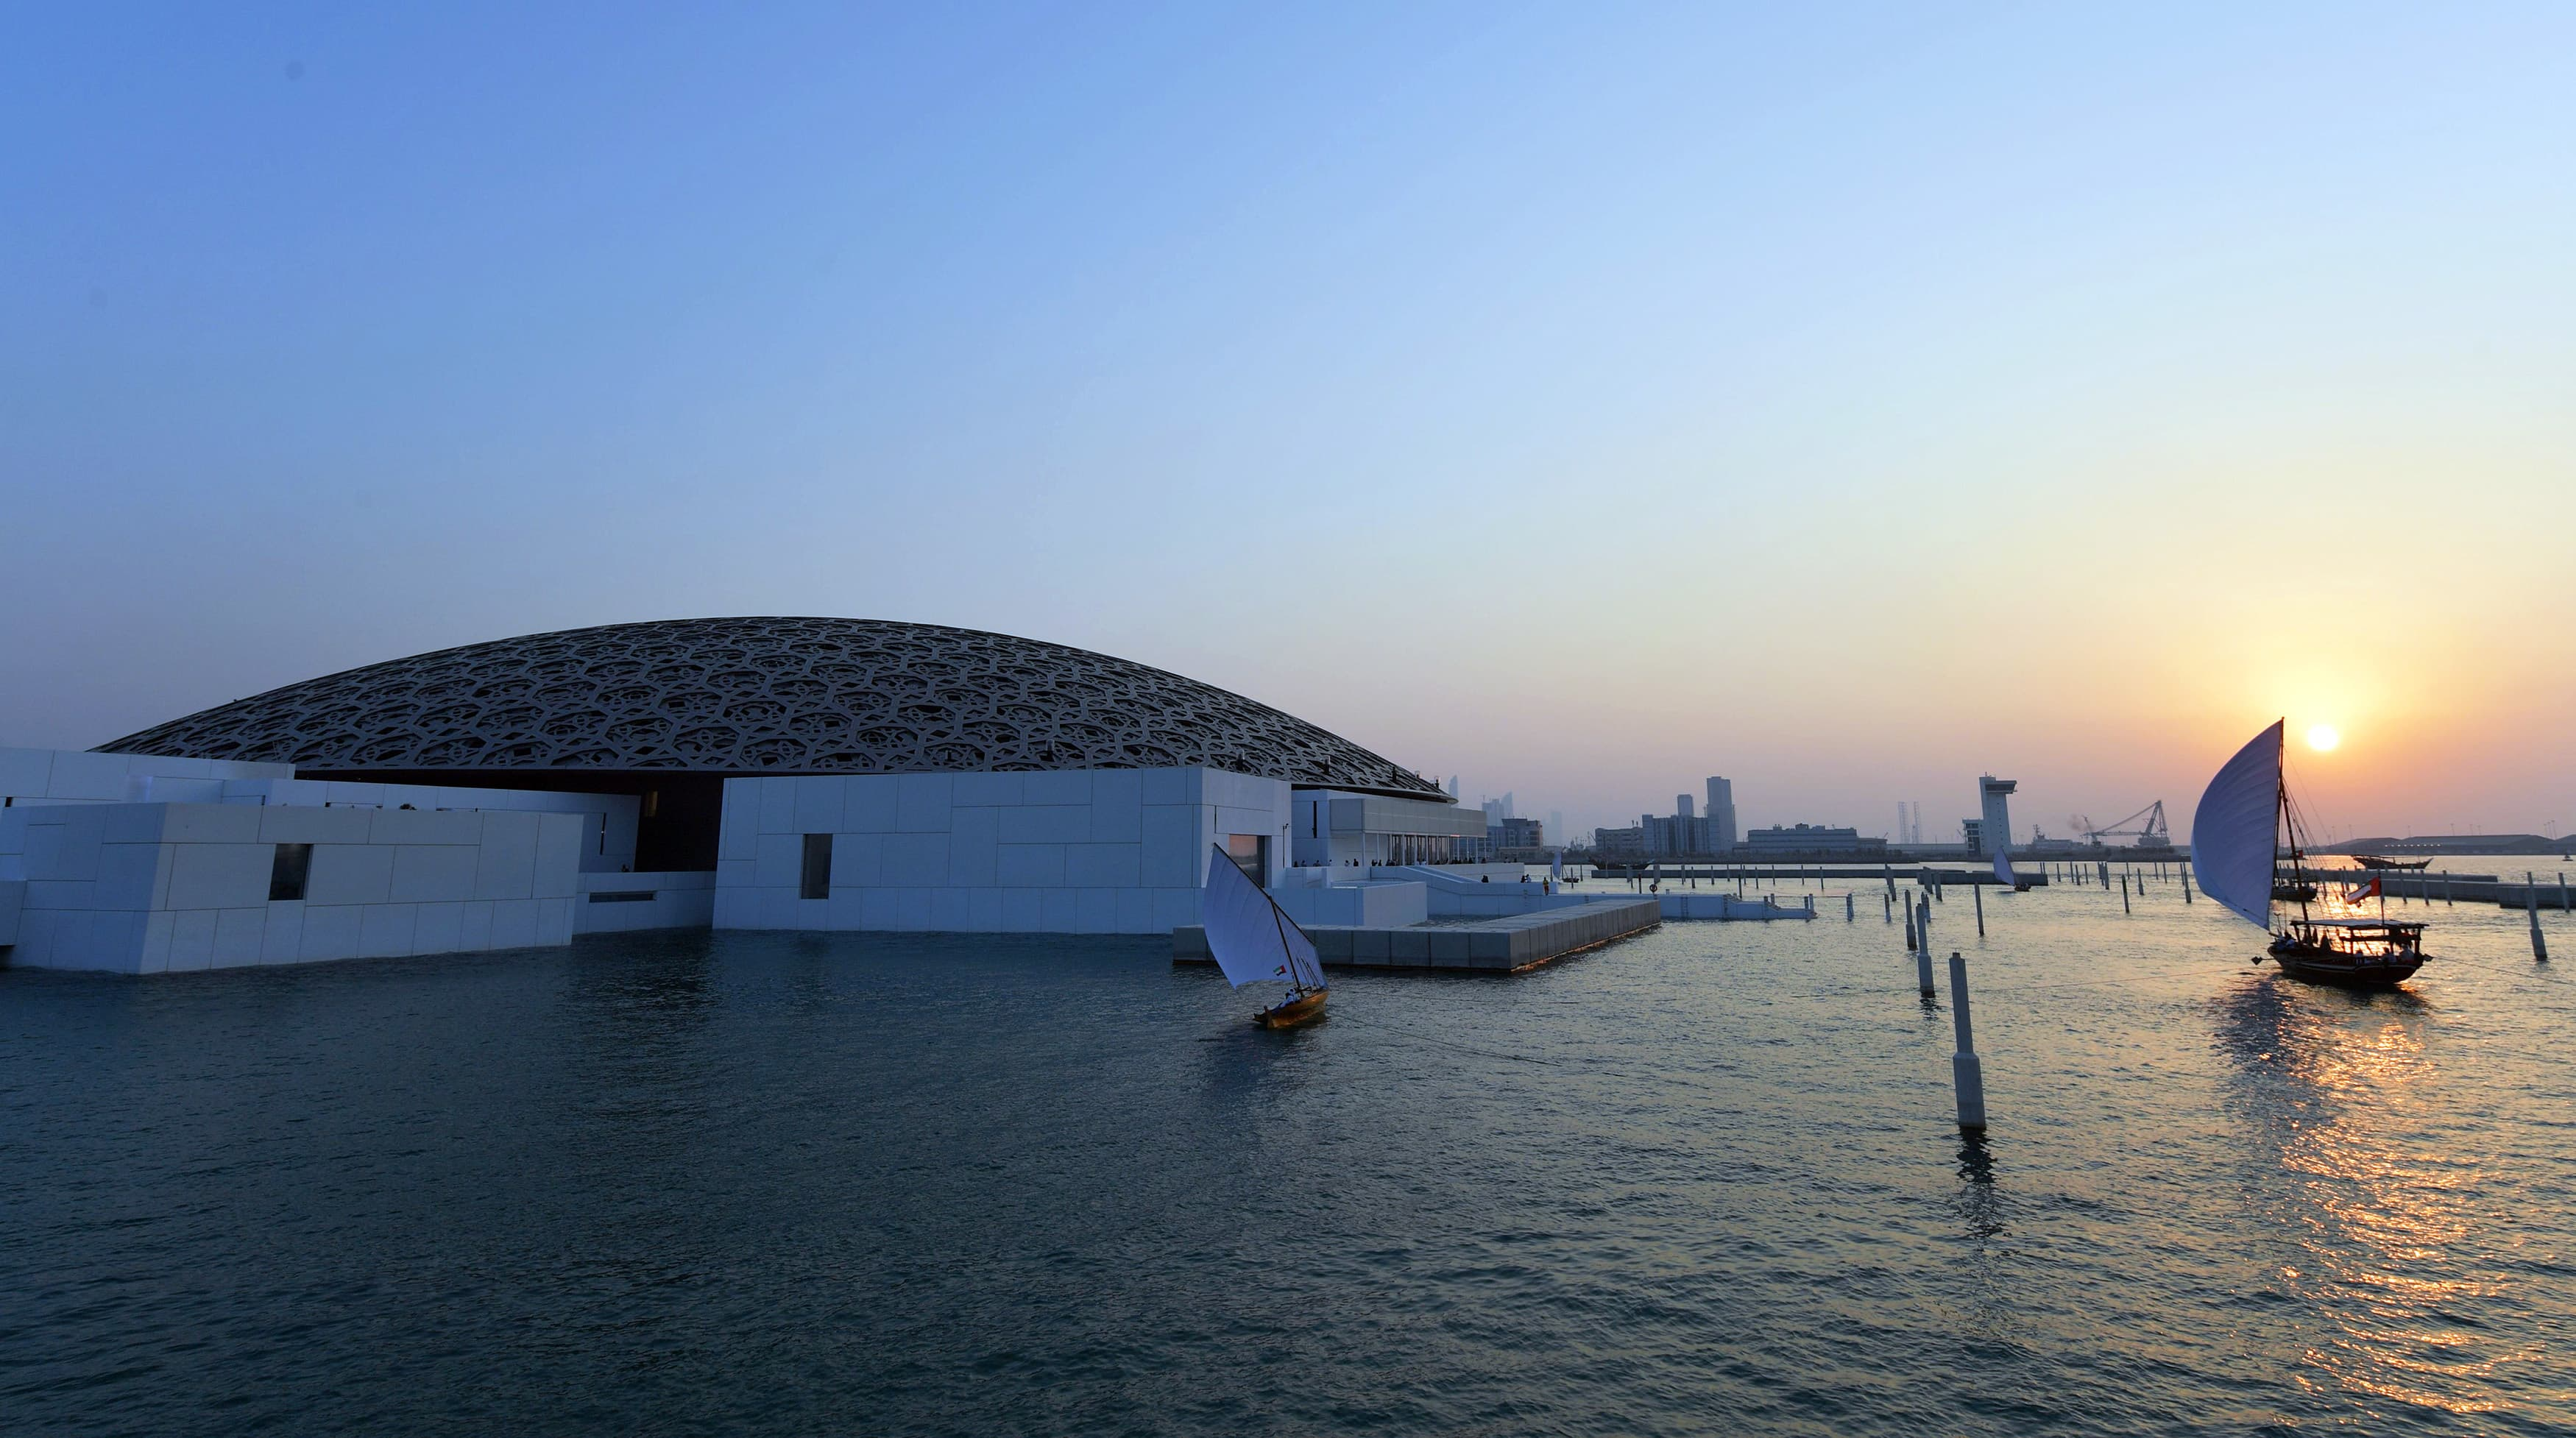 A view of the Louvre Abu Dhabi Museum designed by French architect Jean Nouvel. —AFP